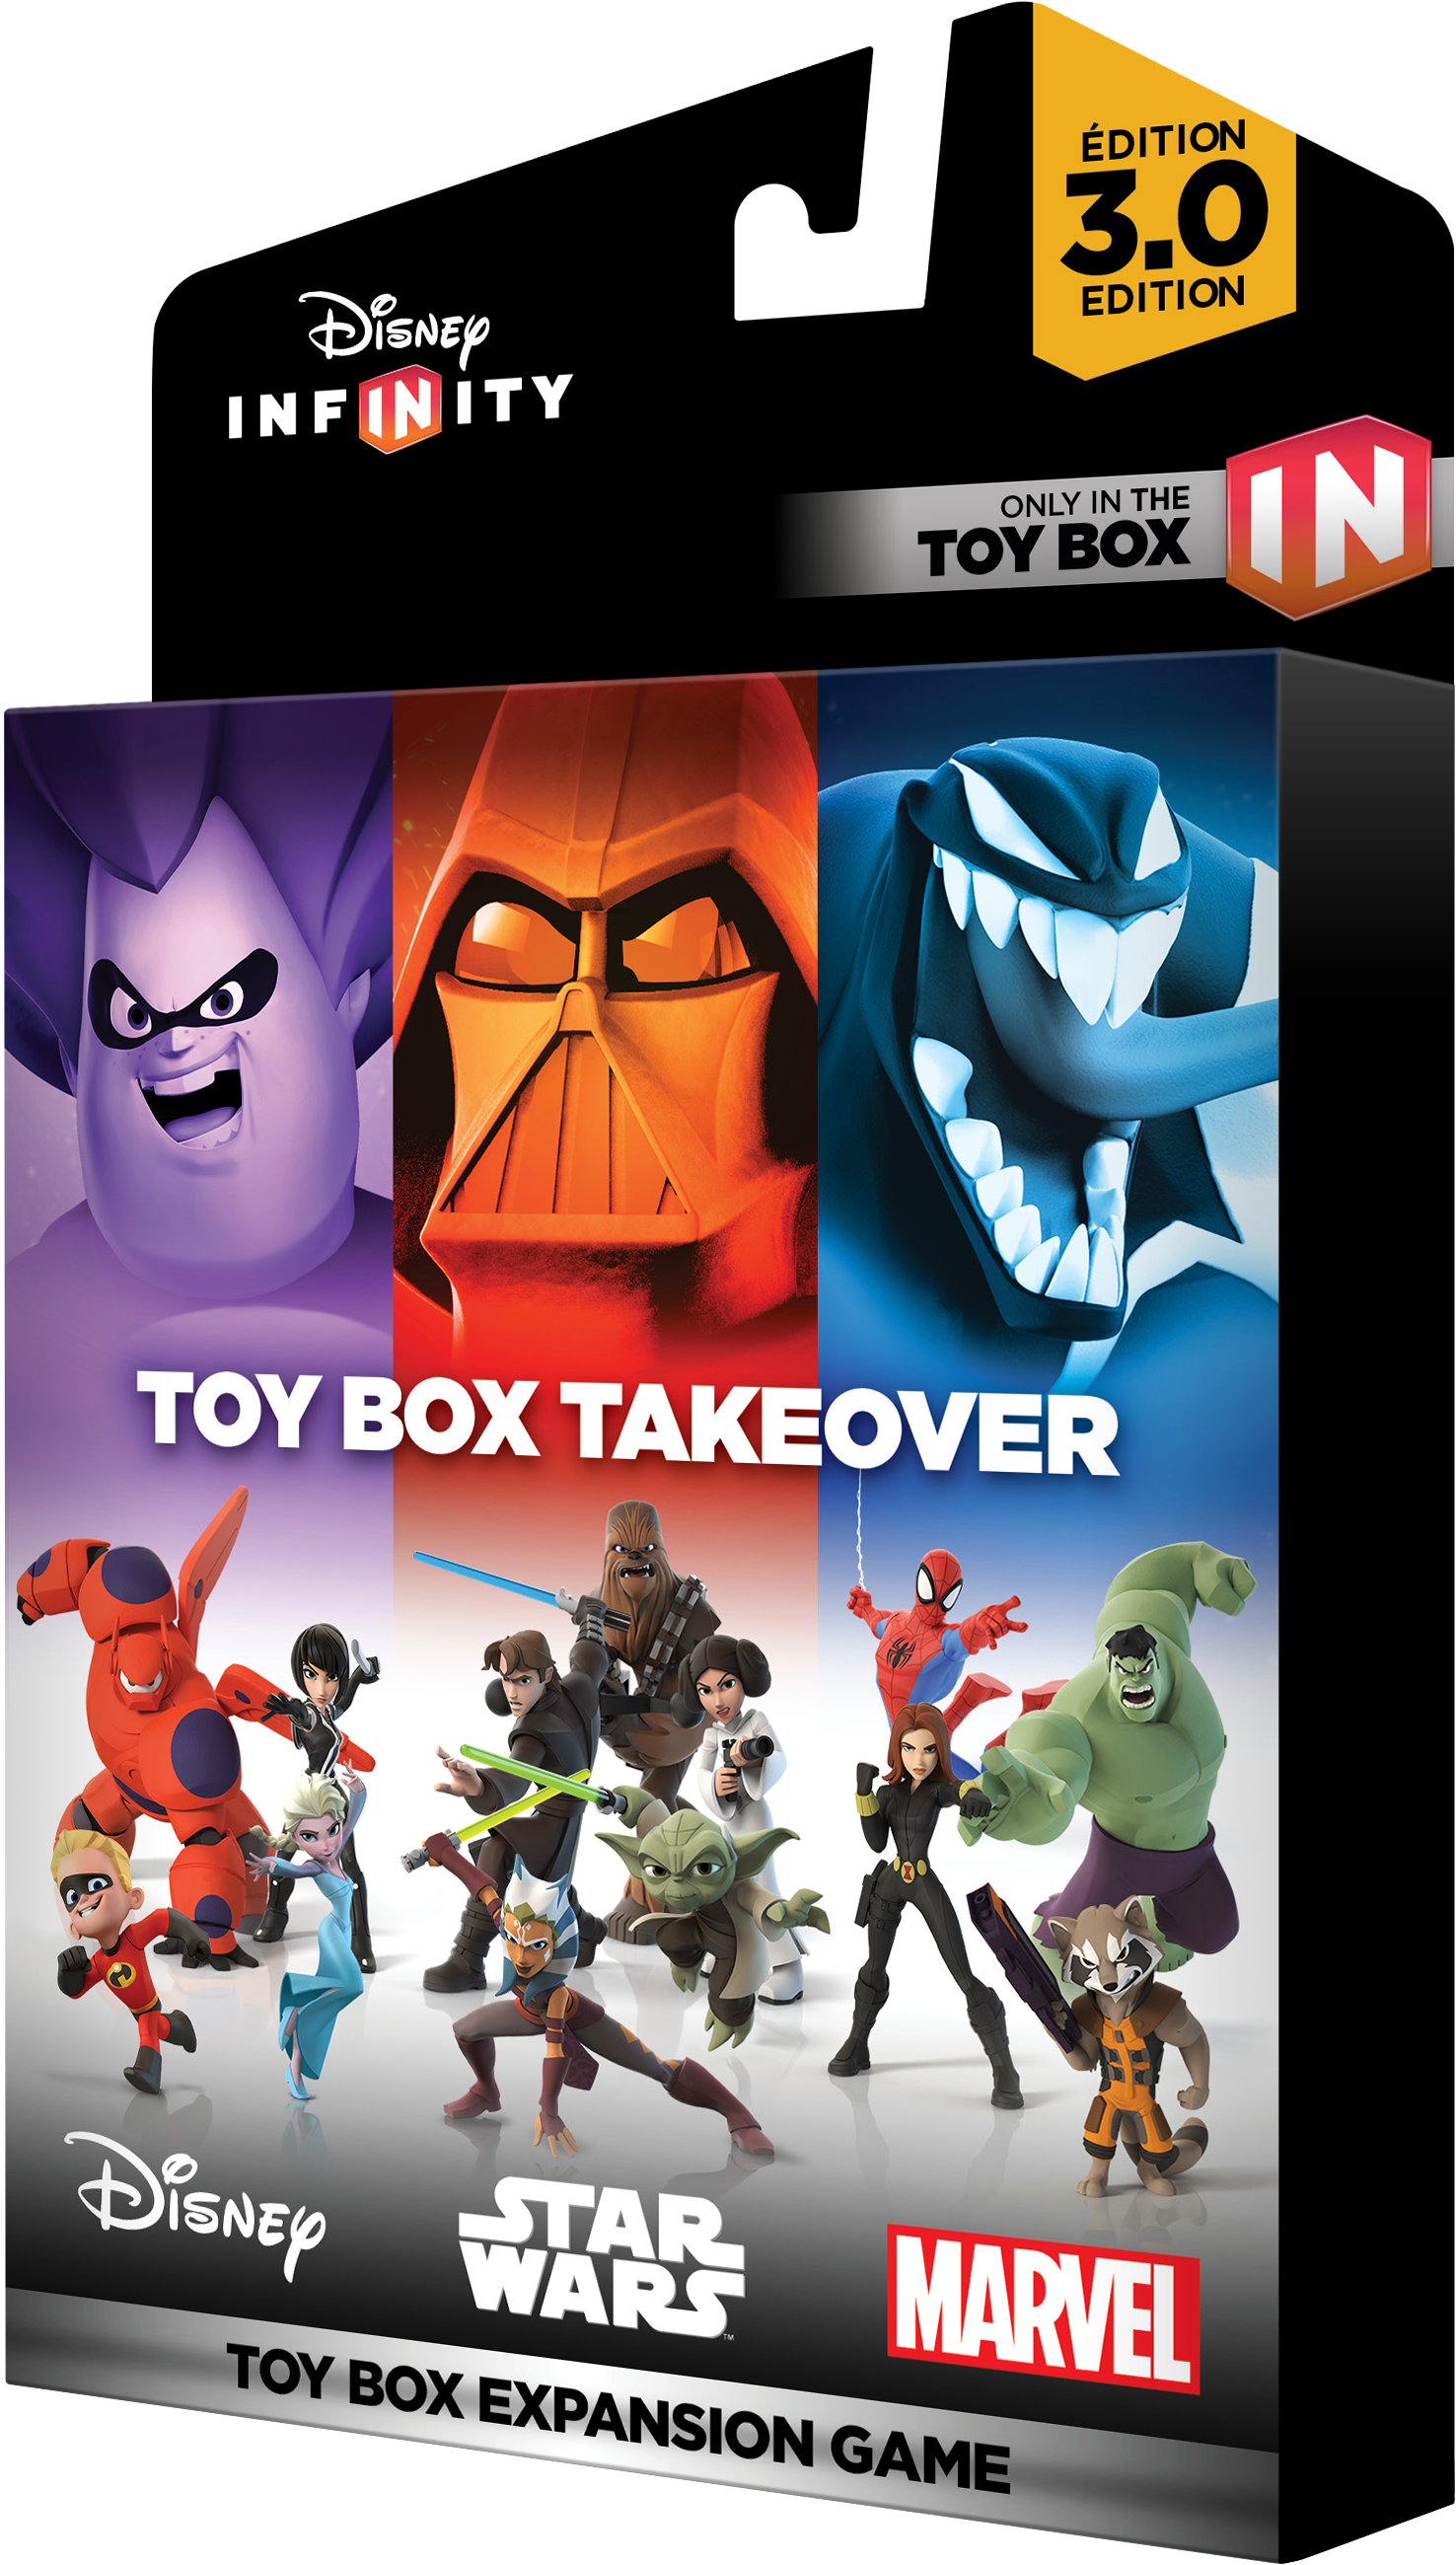 Disney Infinity Toy Box Takeover (With images) Disney